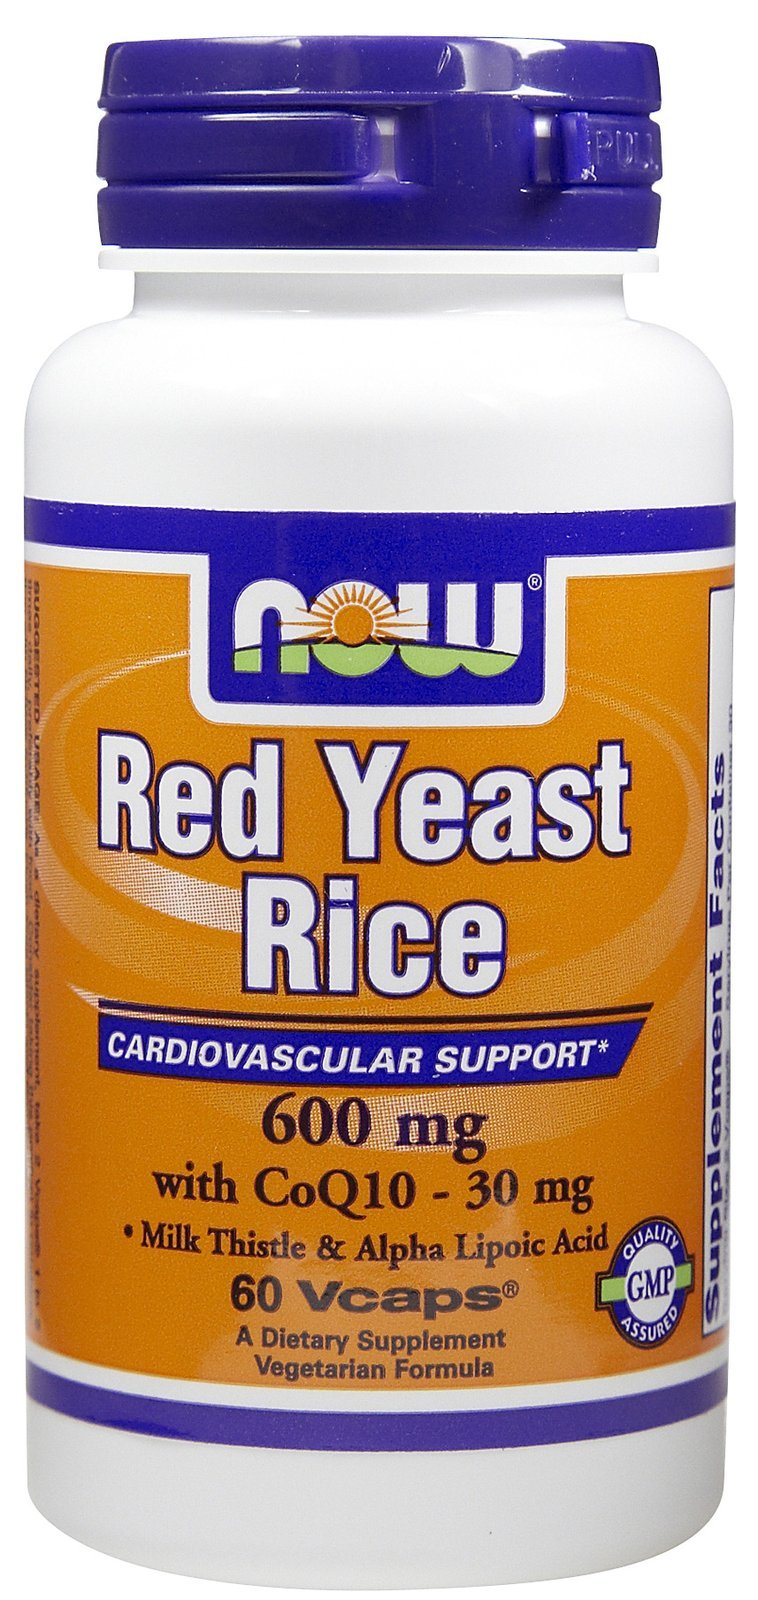 RED YEAST RICE & COQ10 FORMULA, 60 Vcaps by Now Foods (Pack of 6)